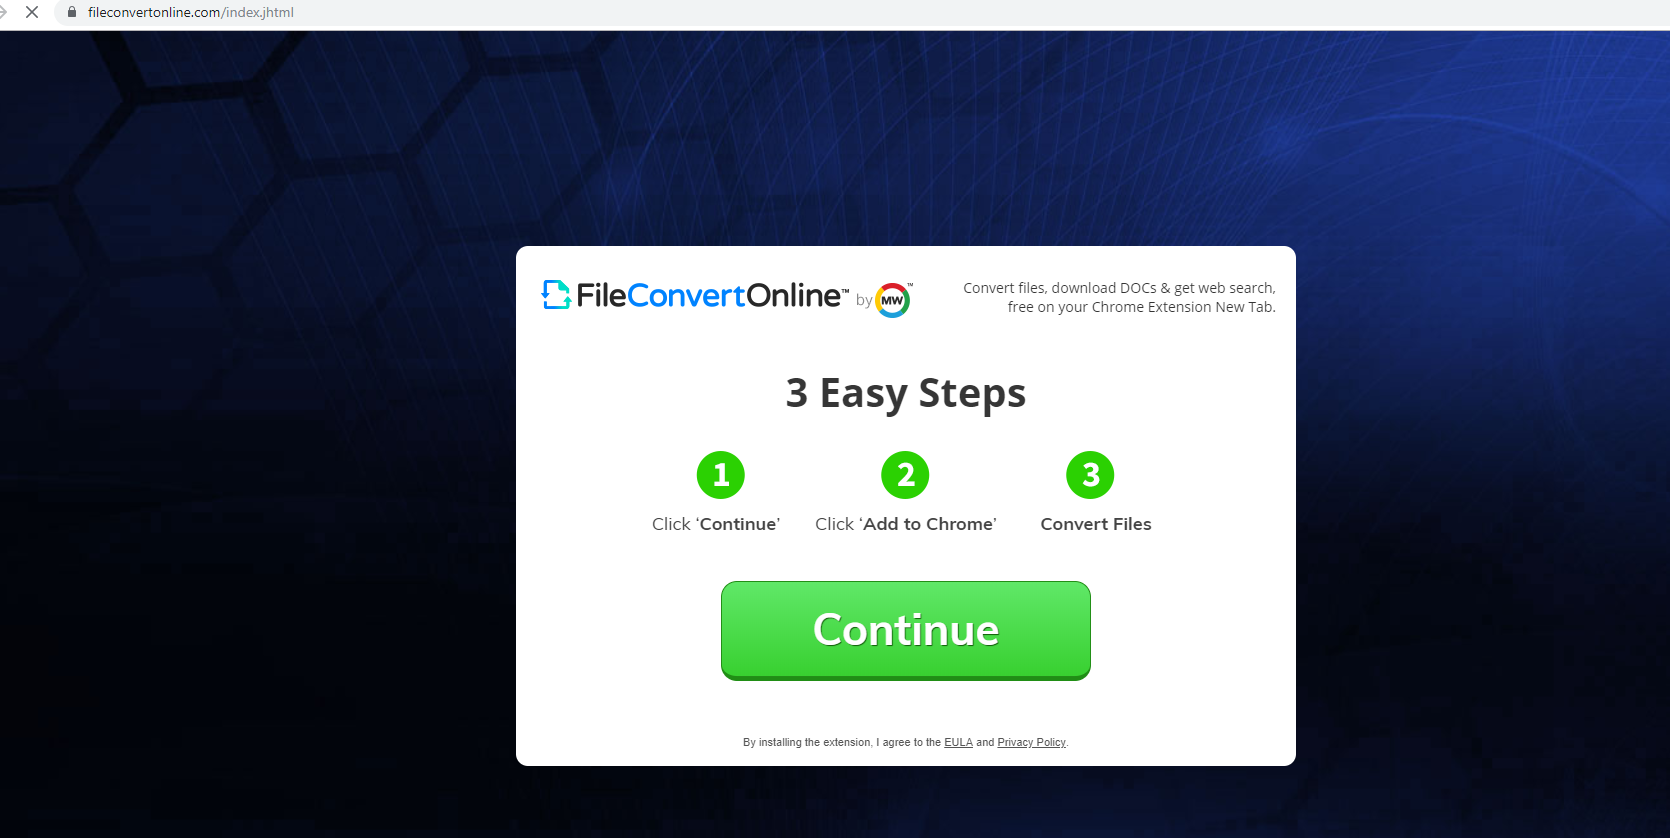 Come eliminare FileConvertOnline